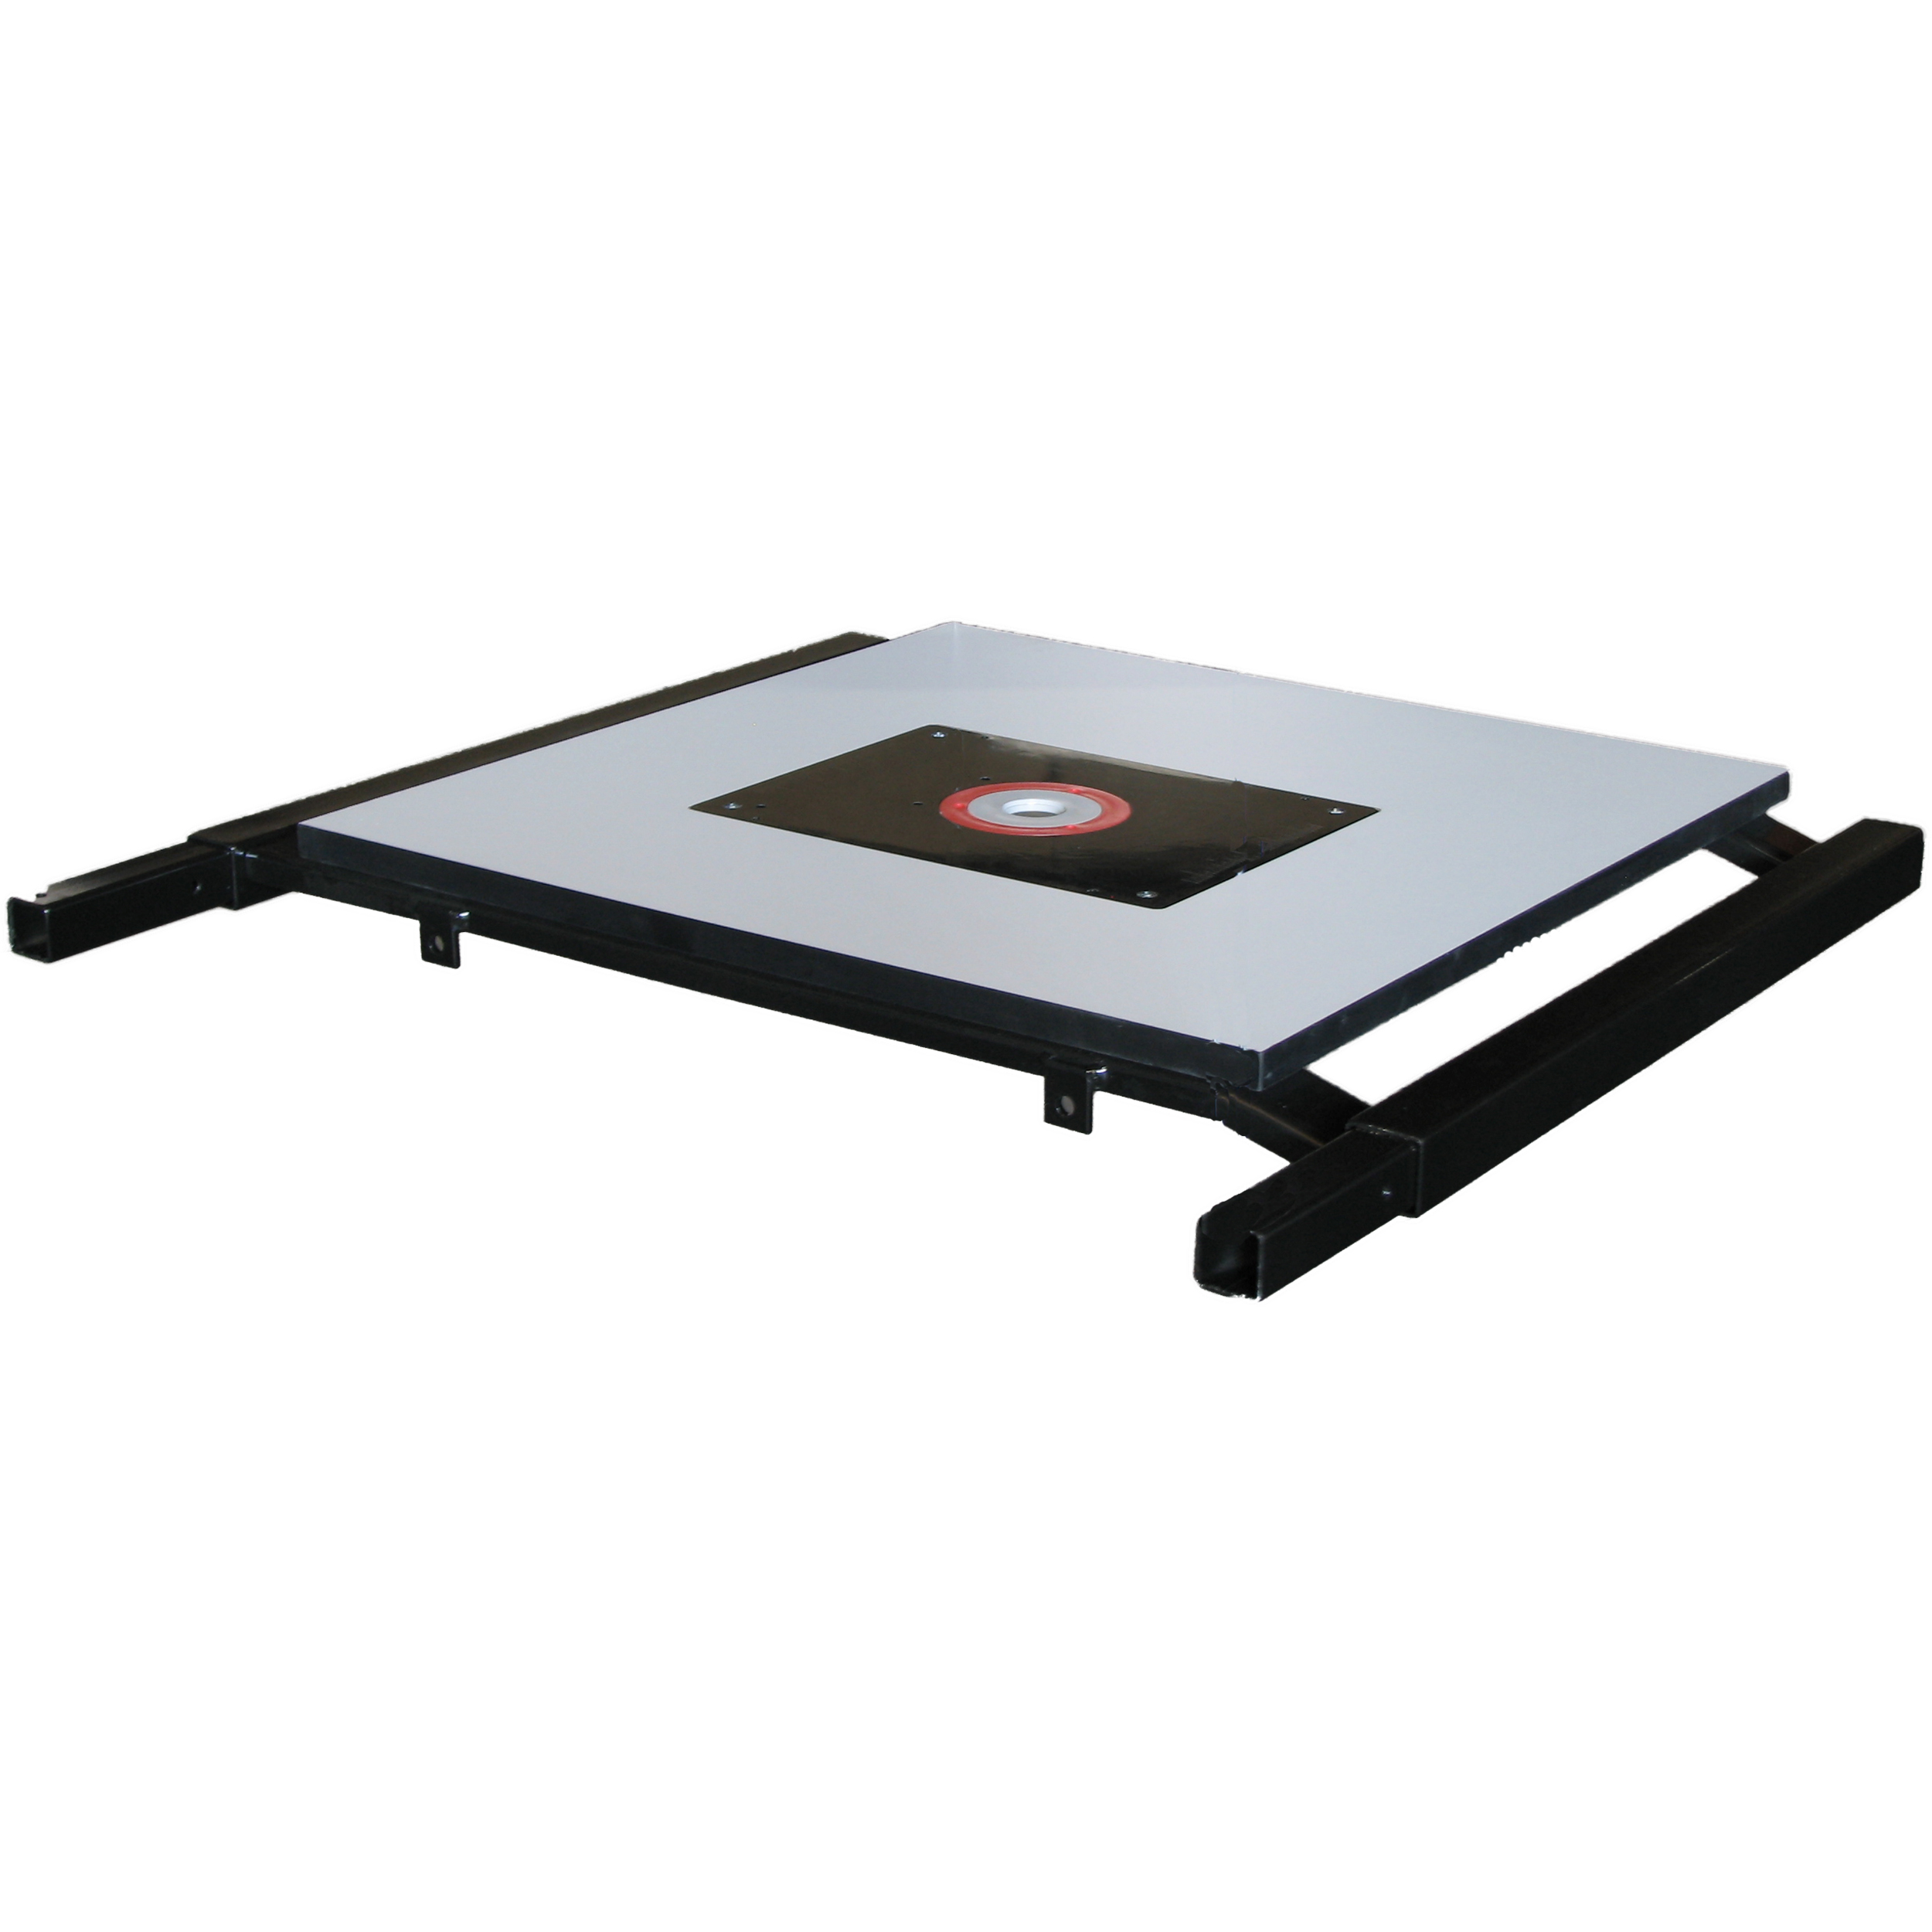 2780-RXT Router Extension Table